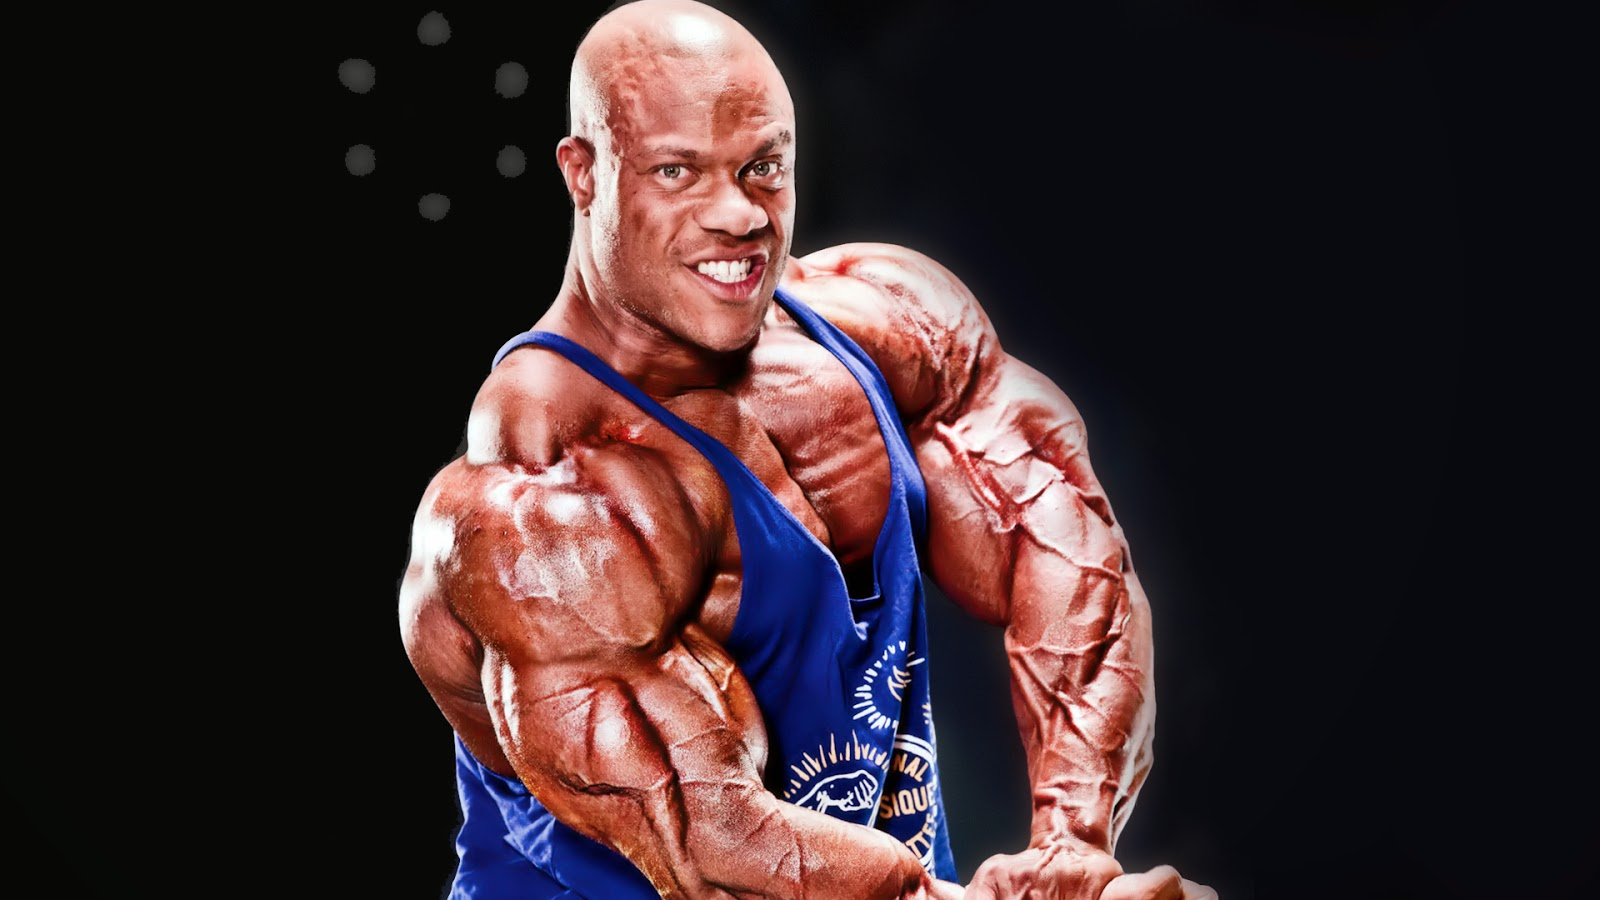 Phil Heath 2014 HD Wallpapers Full HD Wallpapers 1600x900